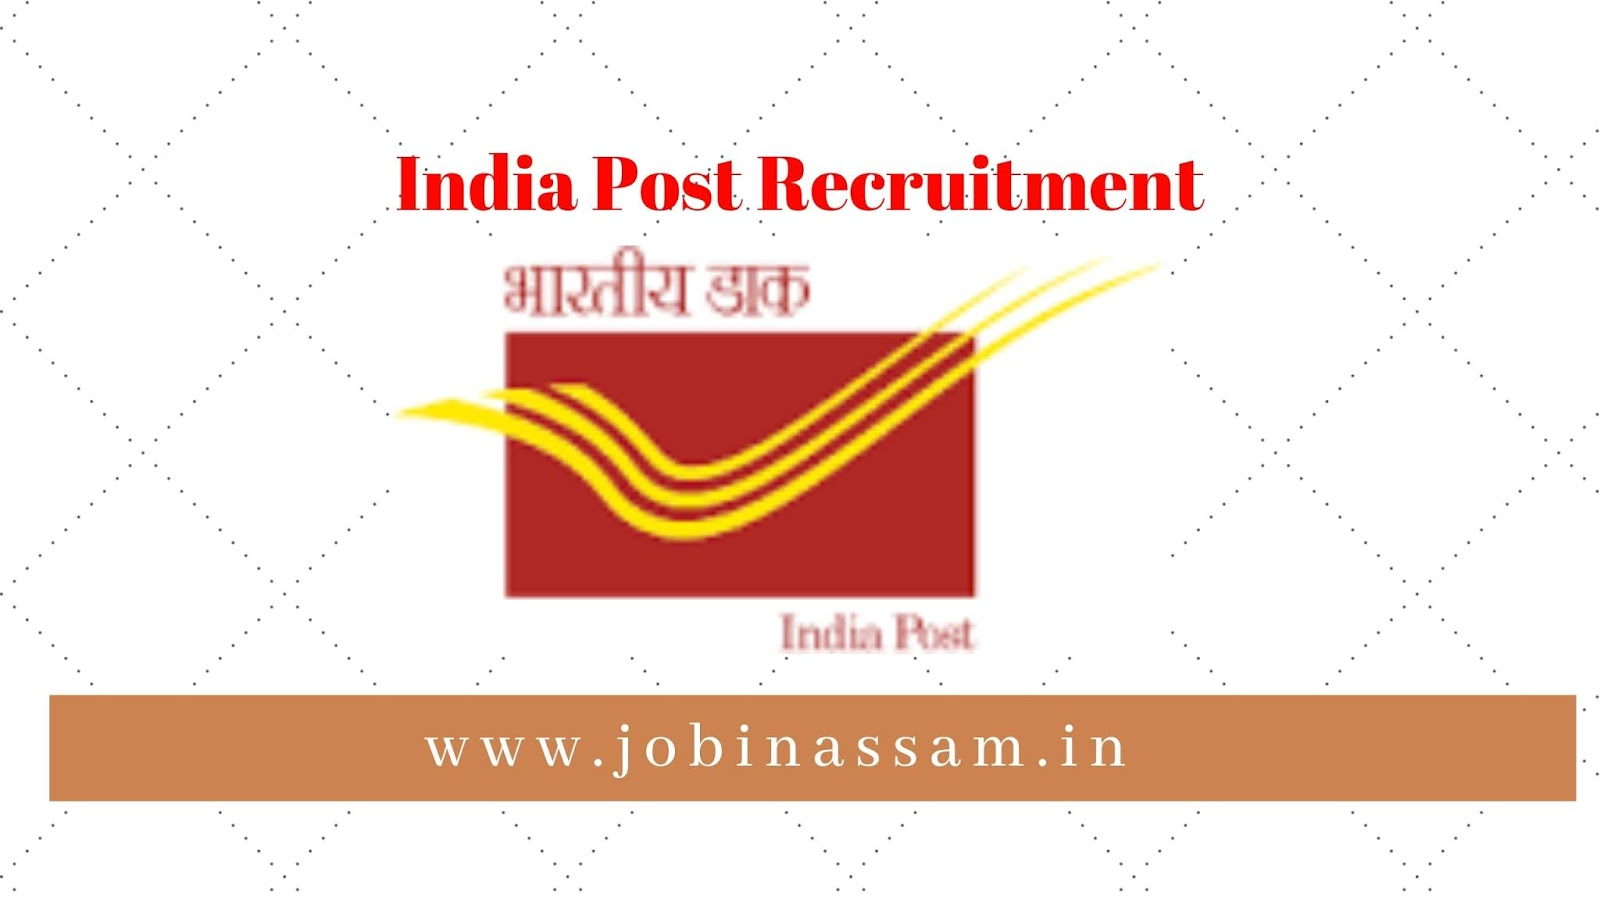 India Post Recruitment 2019: Gramin Dak Sevak || Apply Now